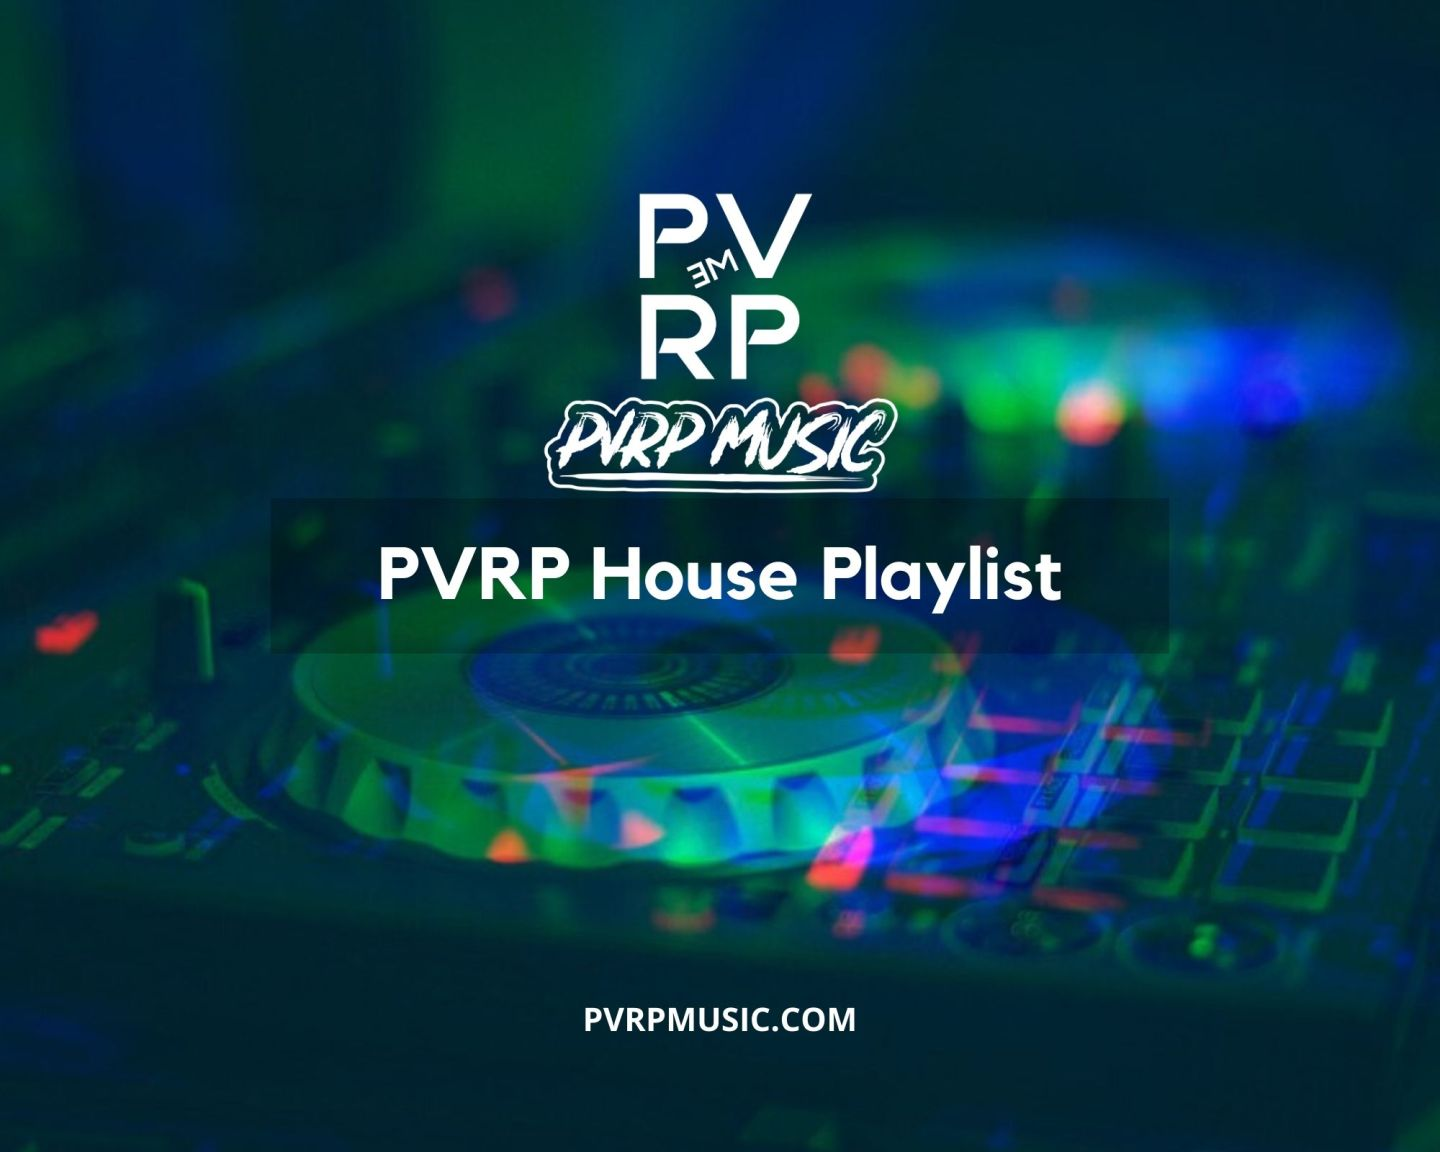 PVRP Music House Playlist